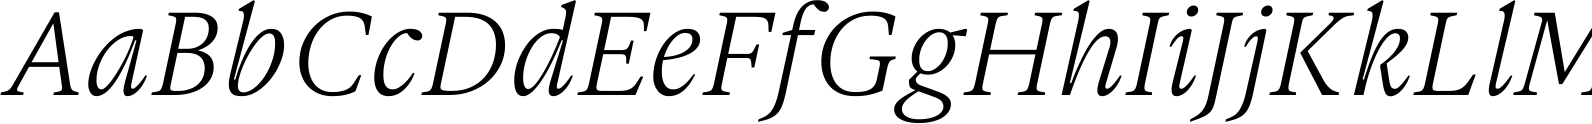 Gauthier FY Italic Font